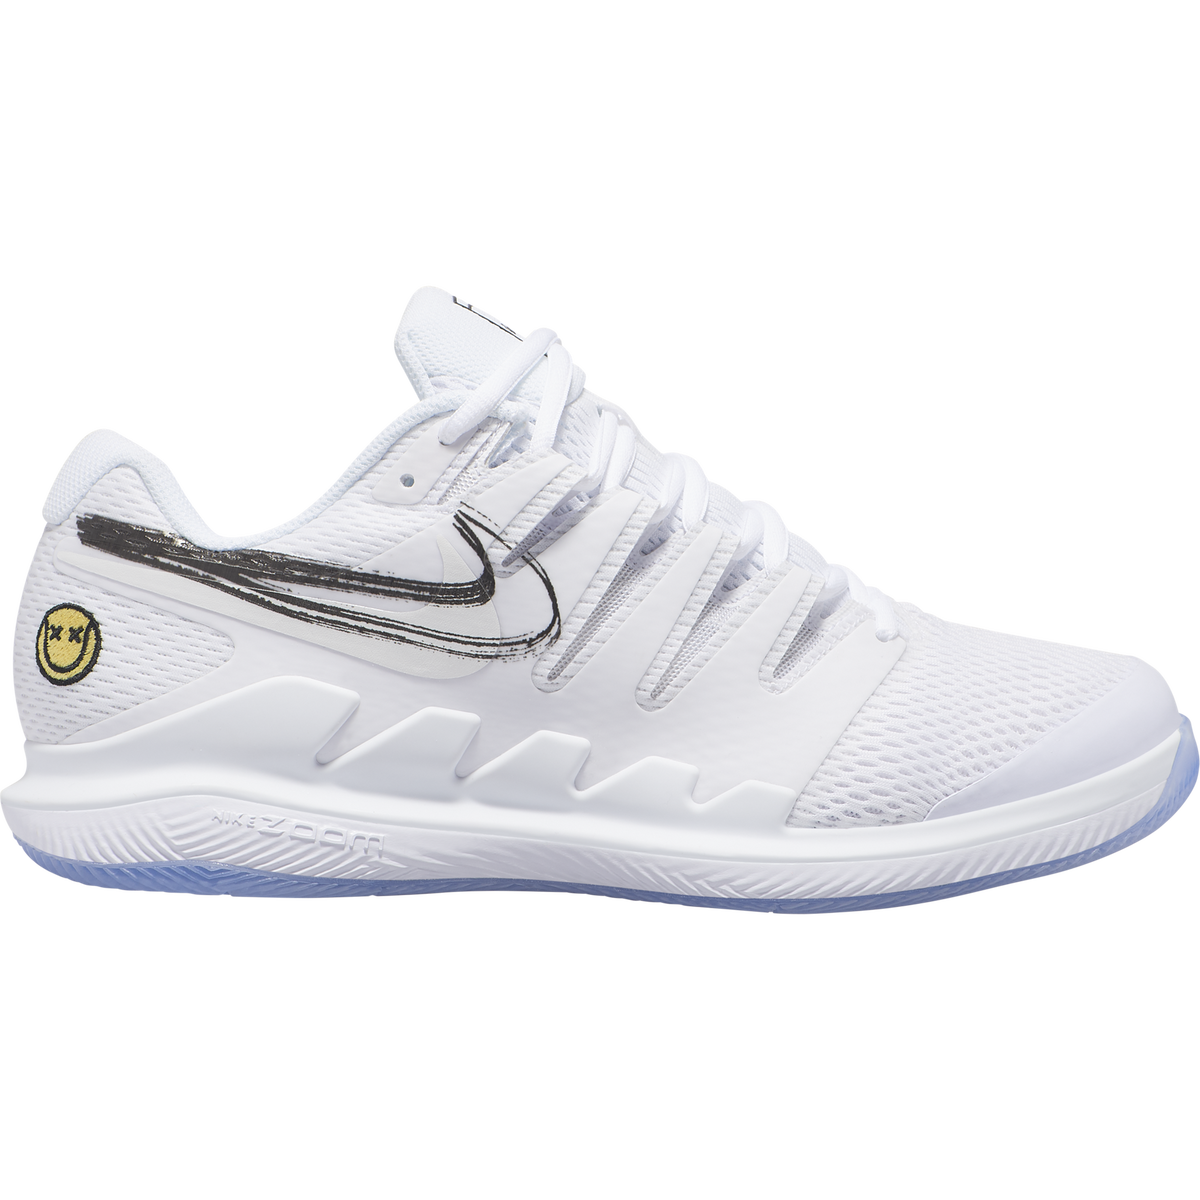 9c773a4b7cb1d Air Zoom Vapor X Men's Tennis Shoe - White